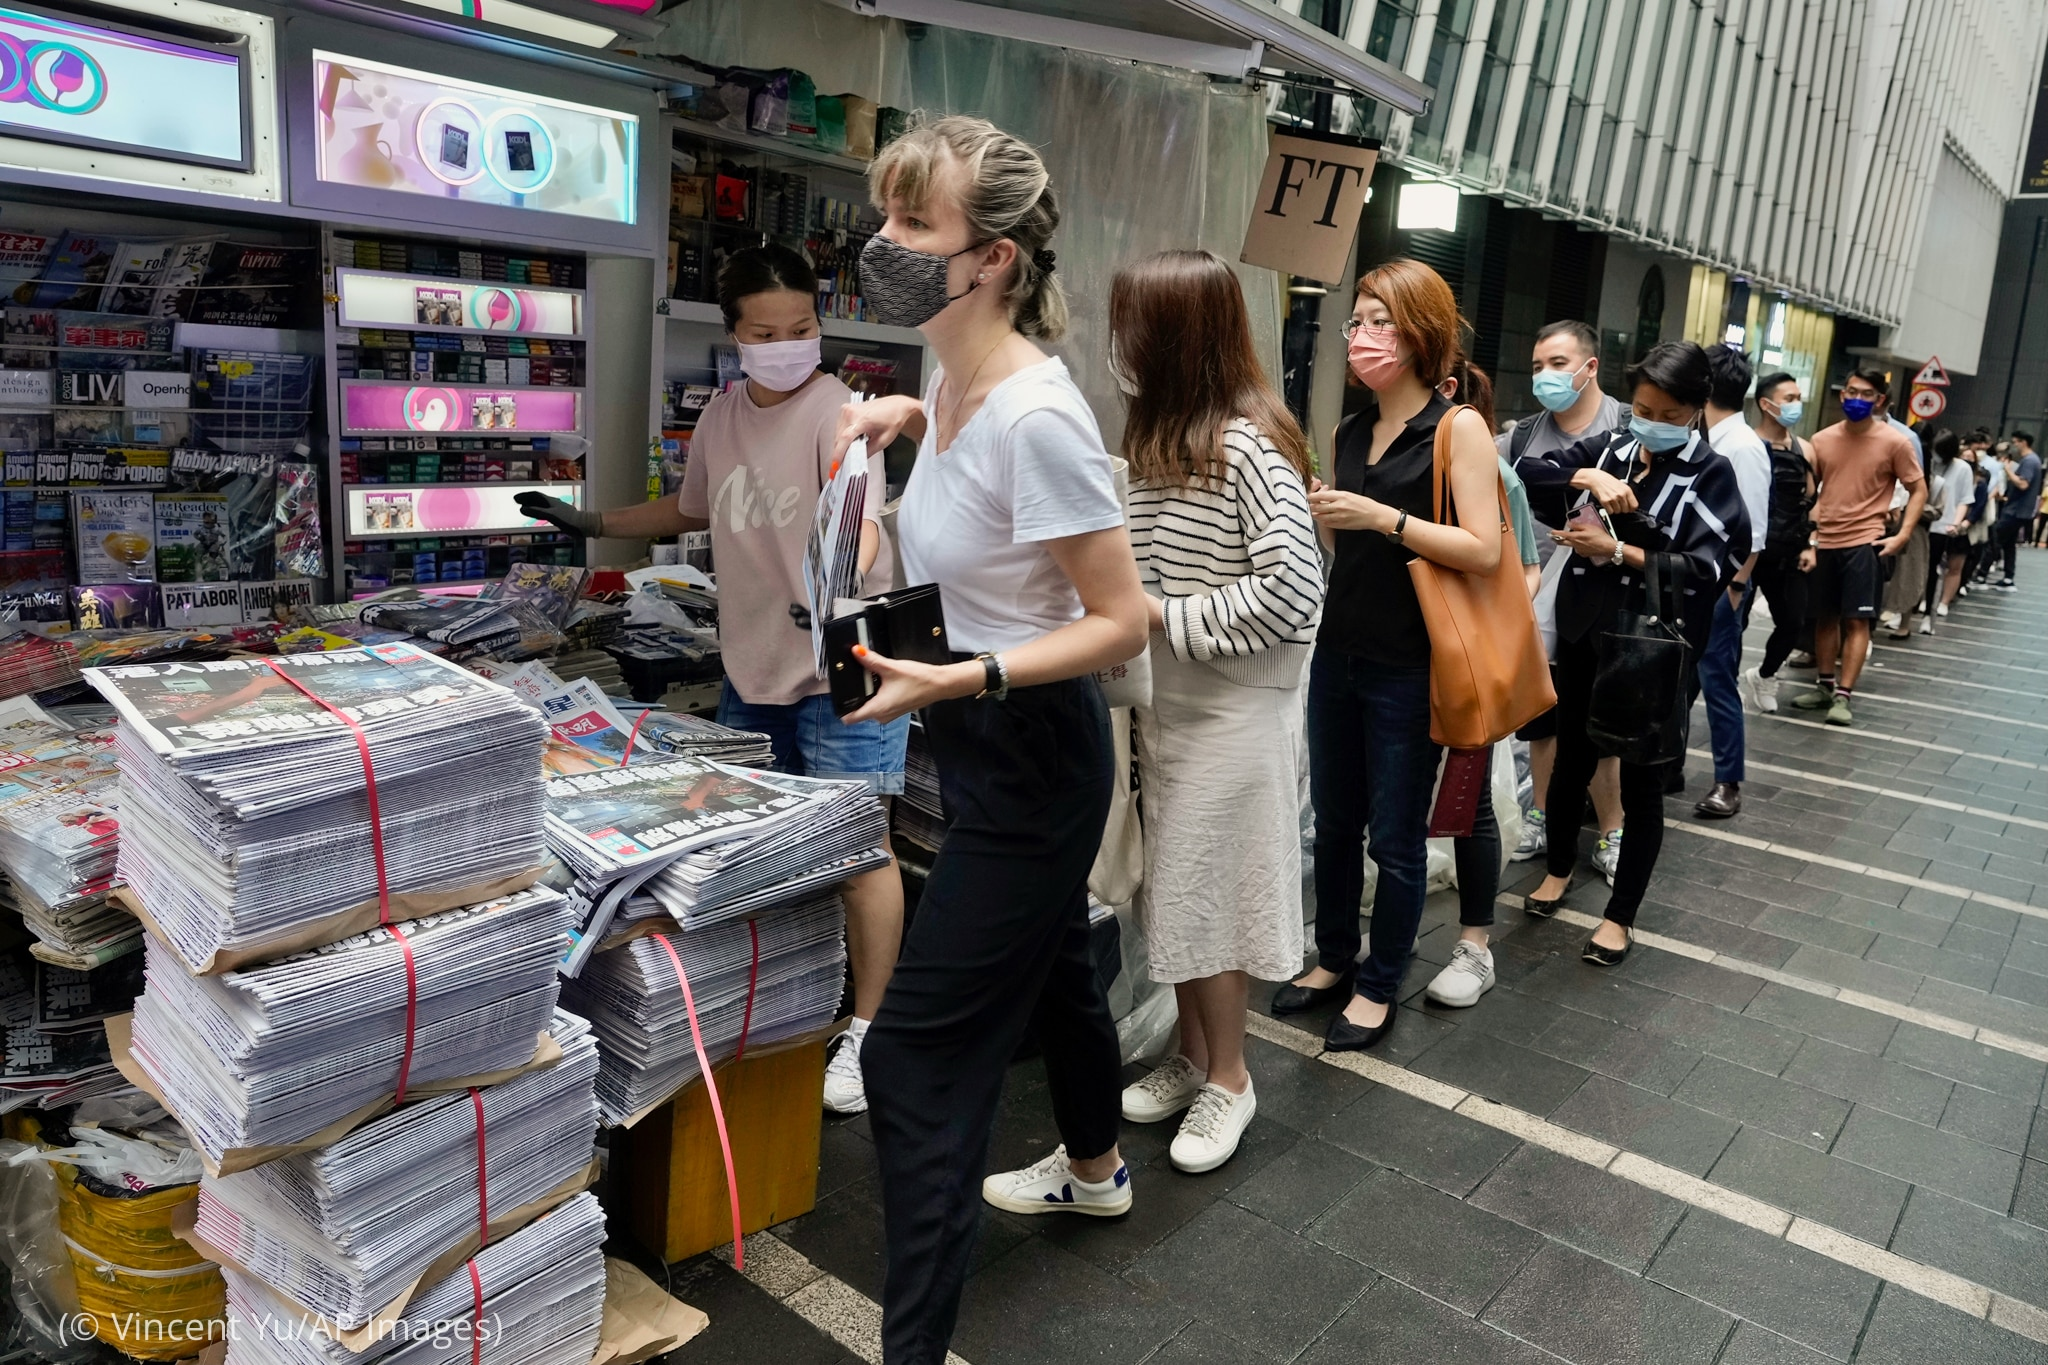 People standing in long line to newspaper stand (© Vincent Yu/AP Images)